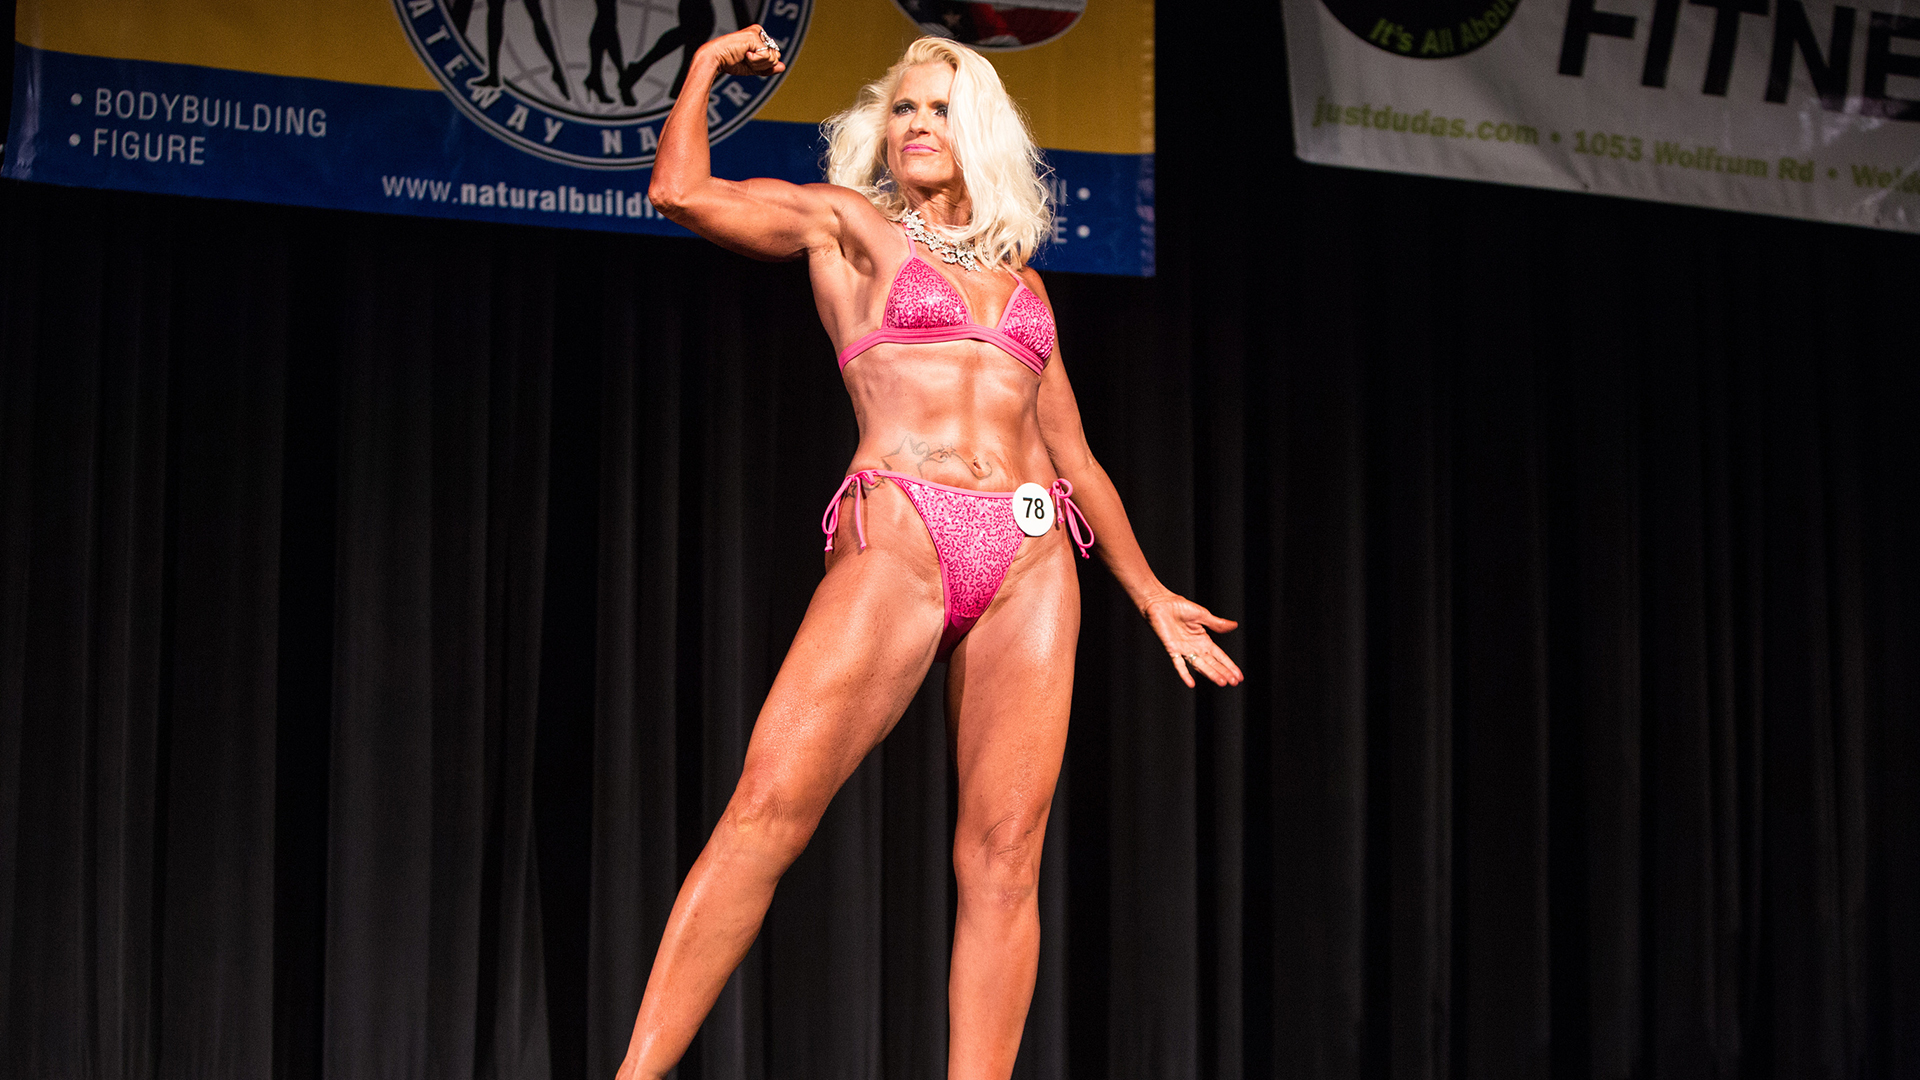 Mom of Three: From Bullied to Bodybuilder at 53